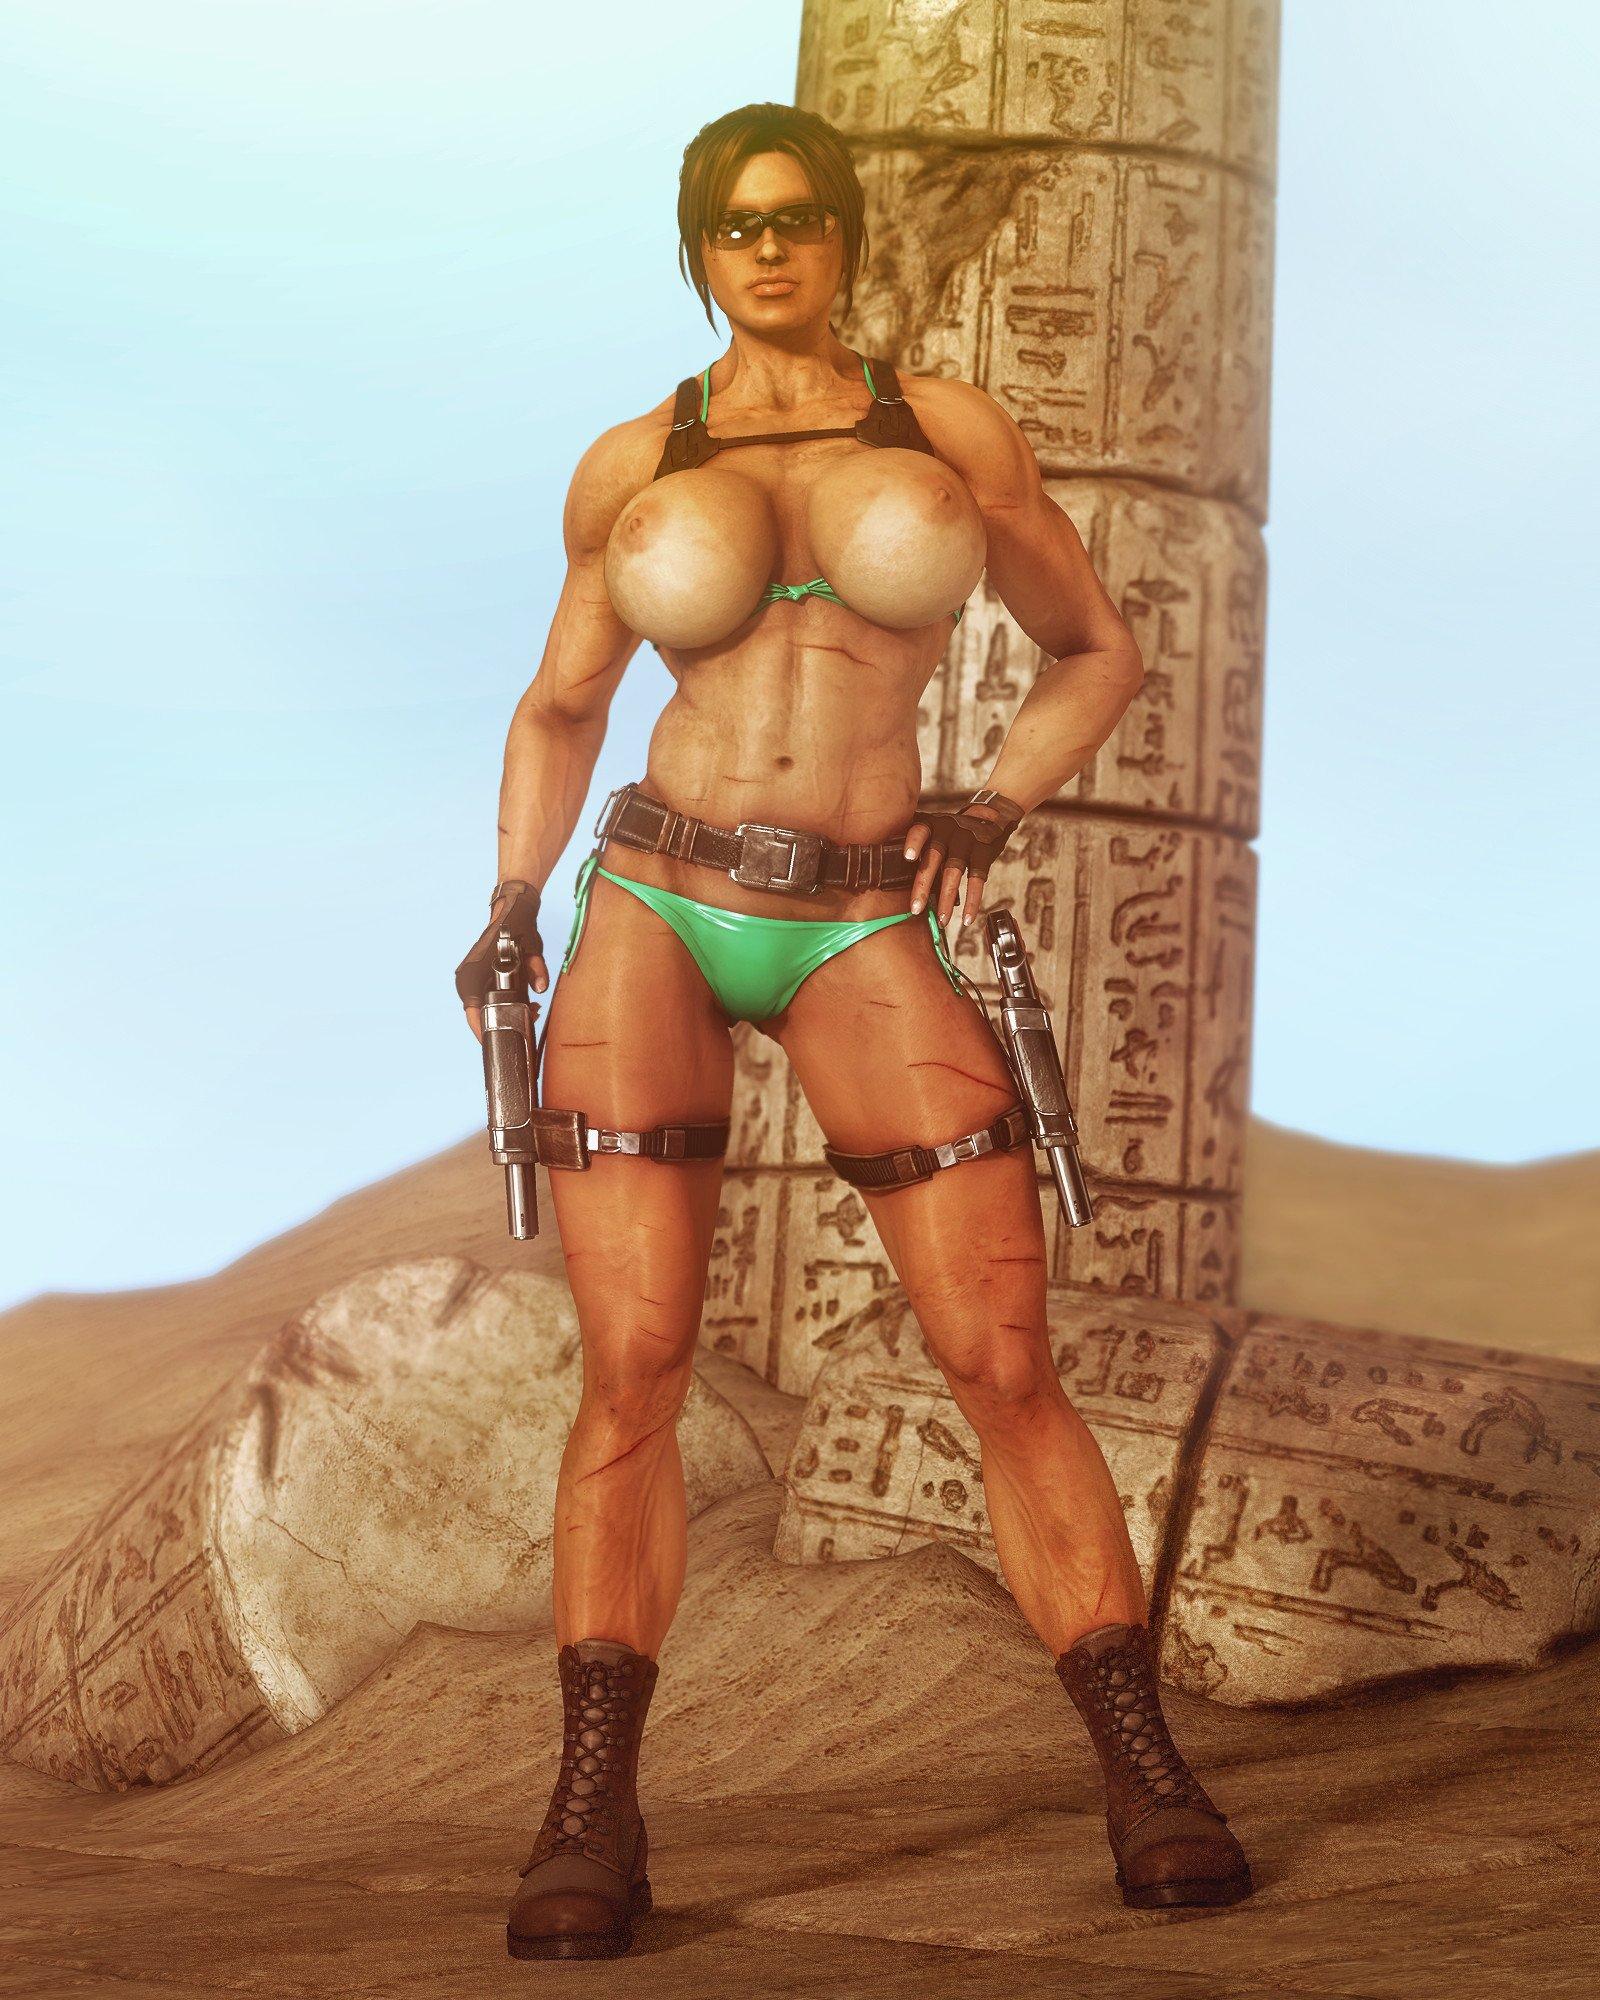 Commit error. Lara croft game character nude question Rather